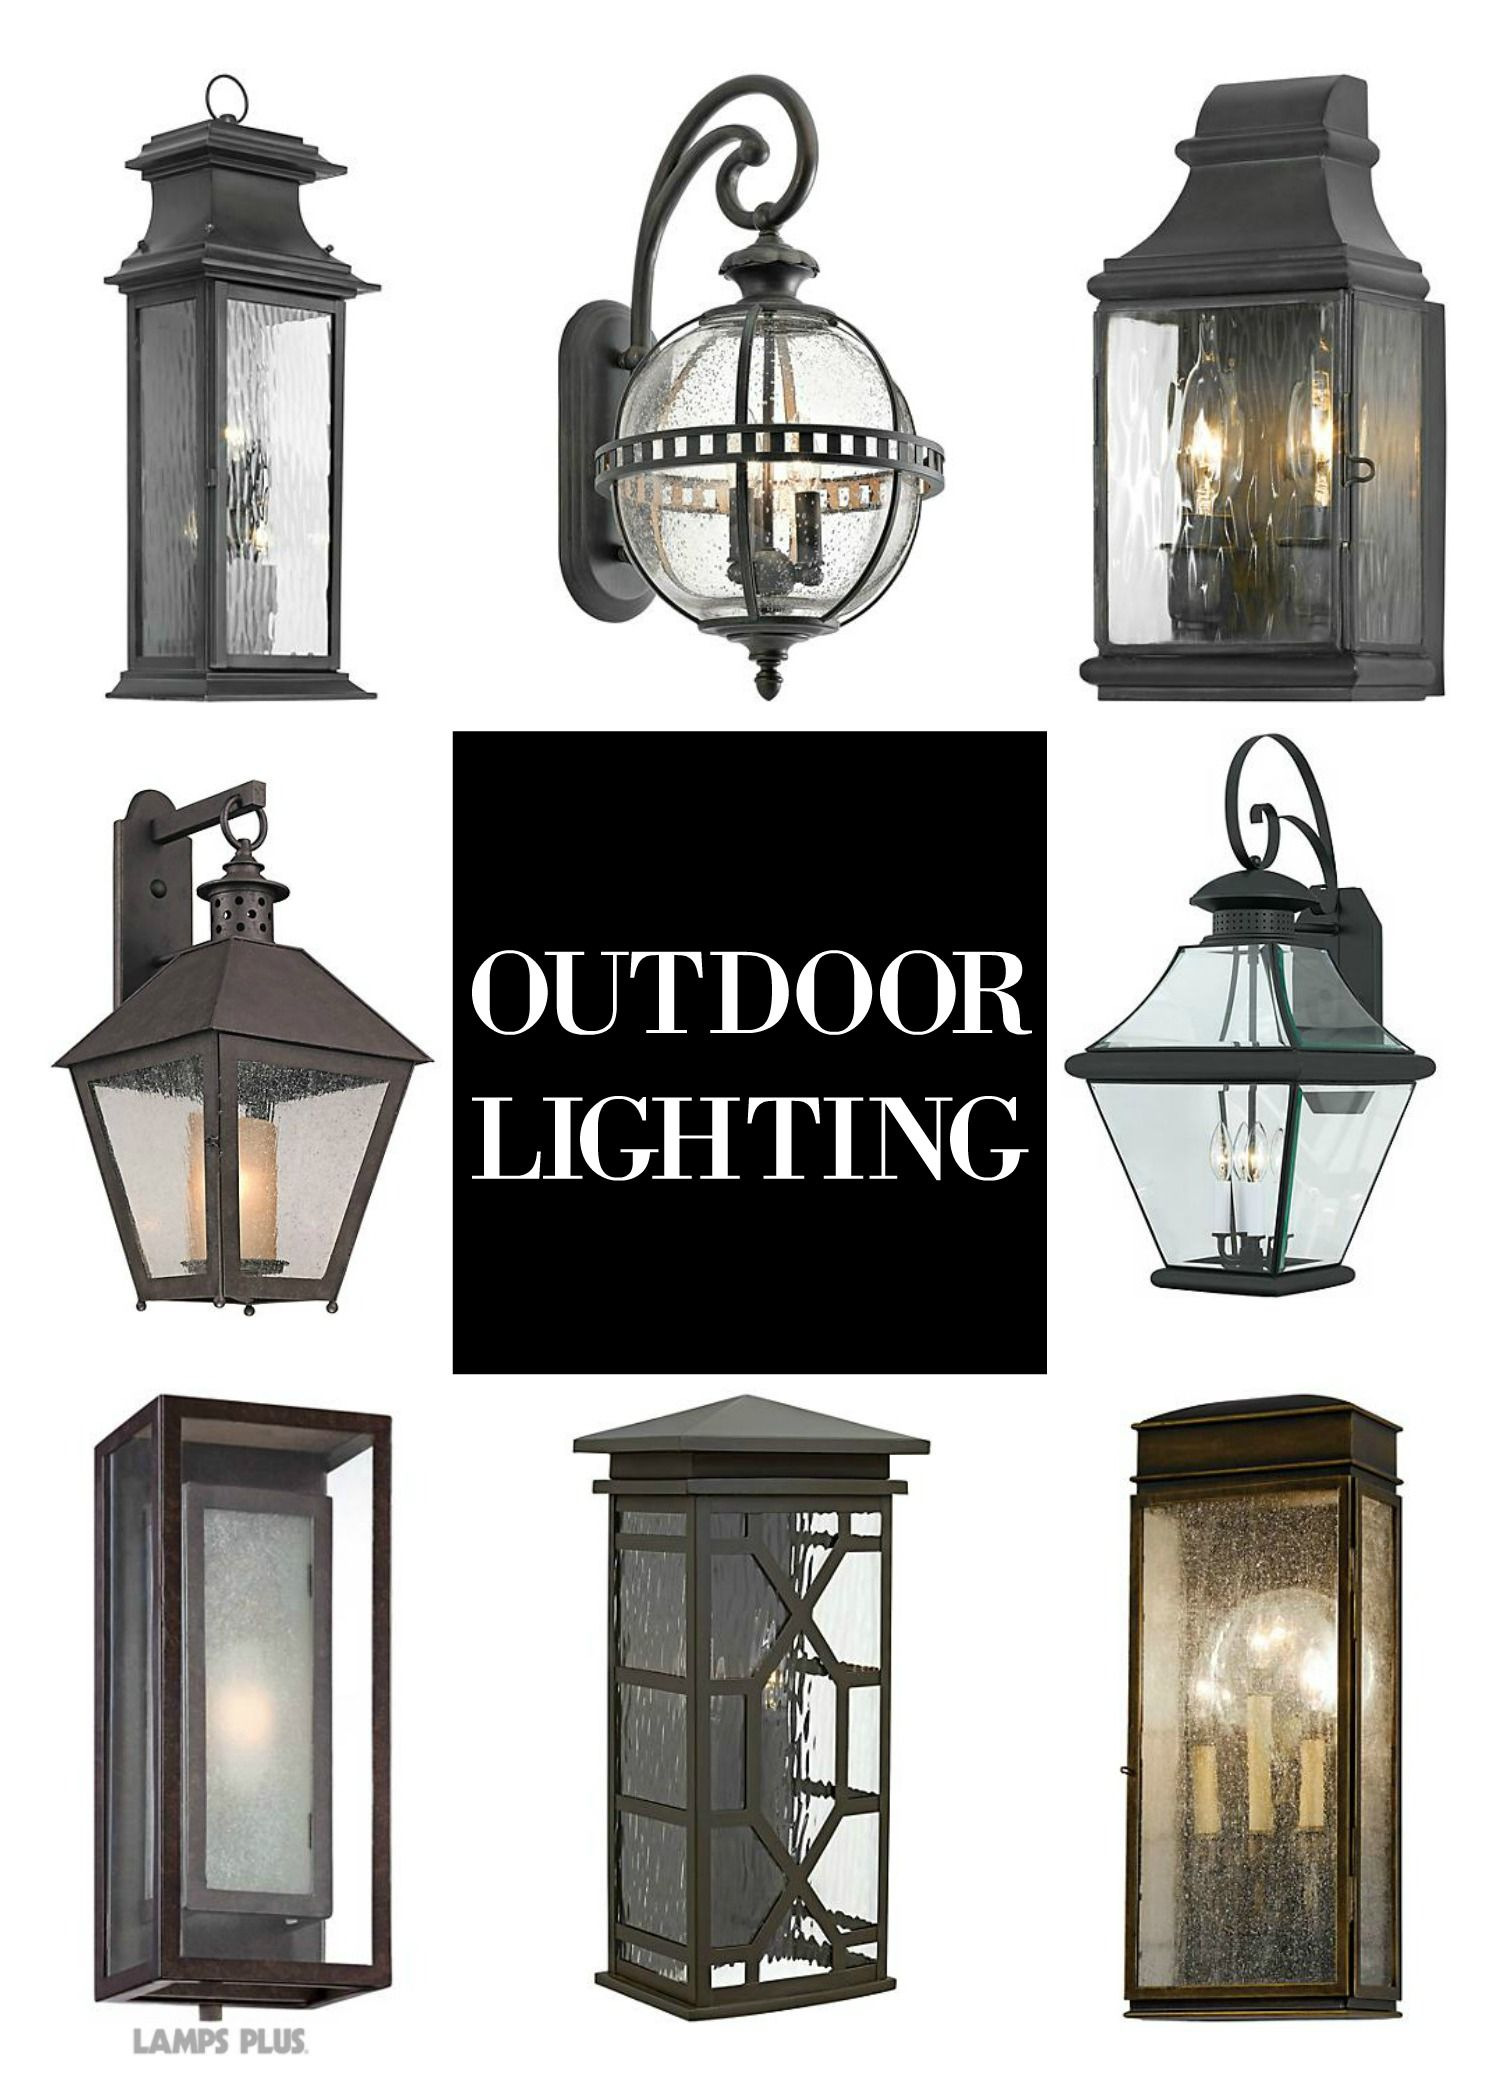 Outdoor Lighting Lantern Wall Sconces Perfect For A Front Entry To Your Backyard Par Exterior Light Fixtures Rustic Outdoor Lighting Outdoor Light Fixtures